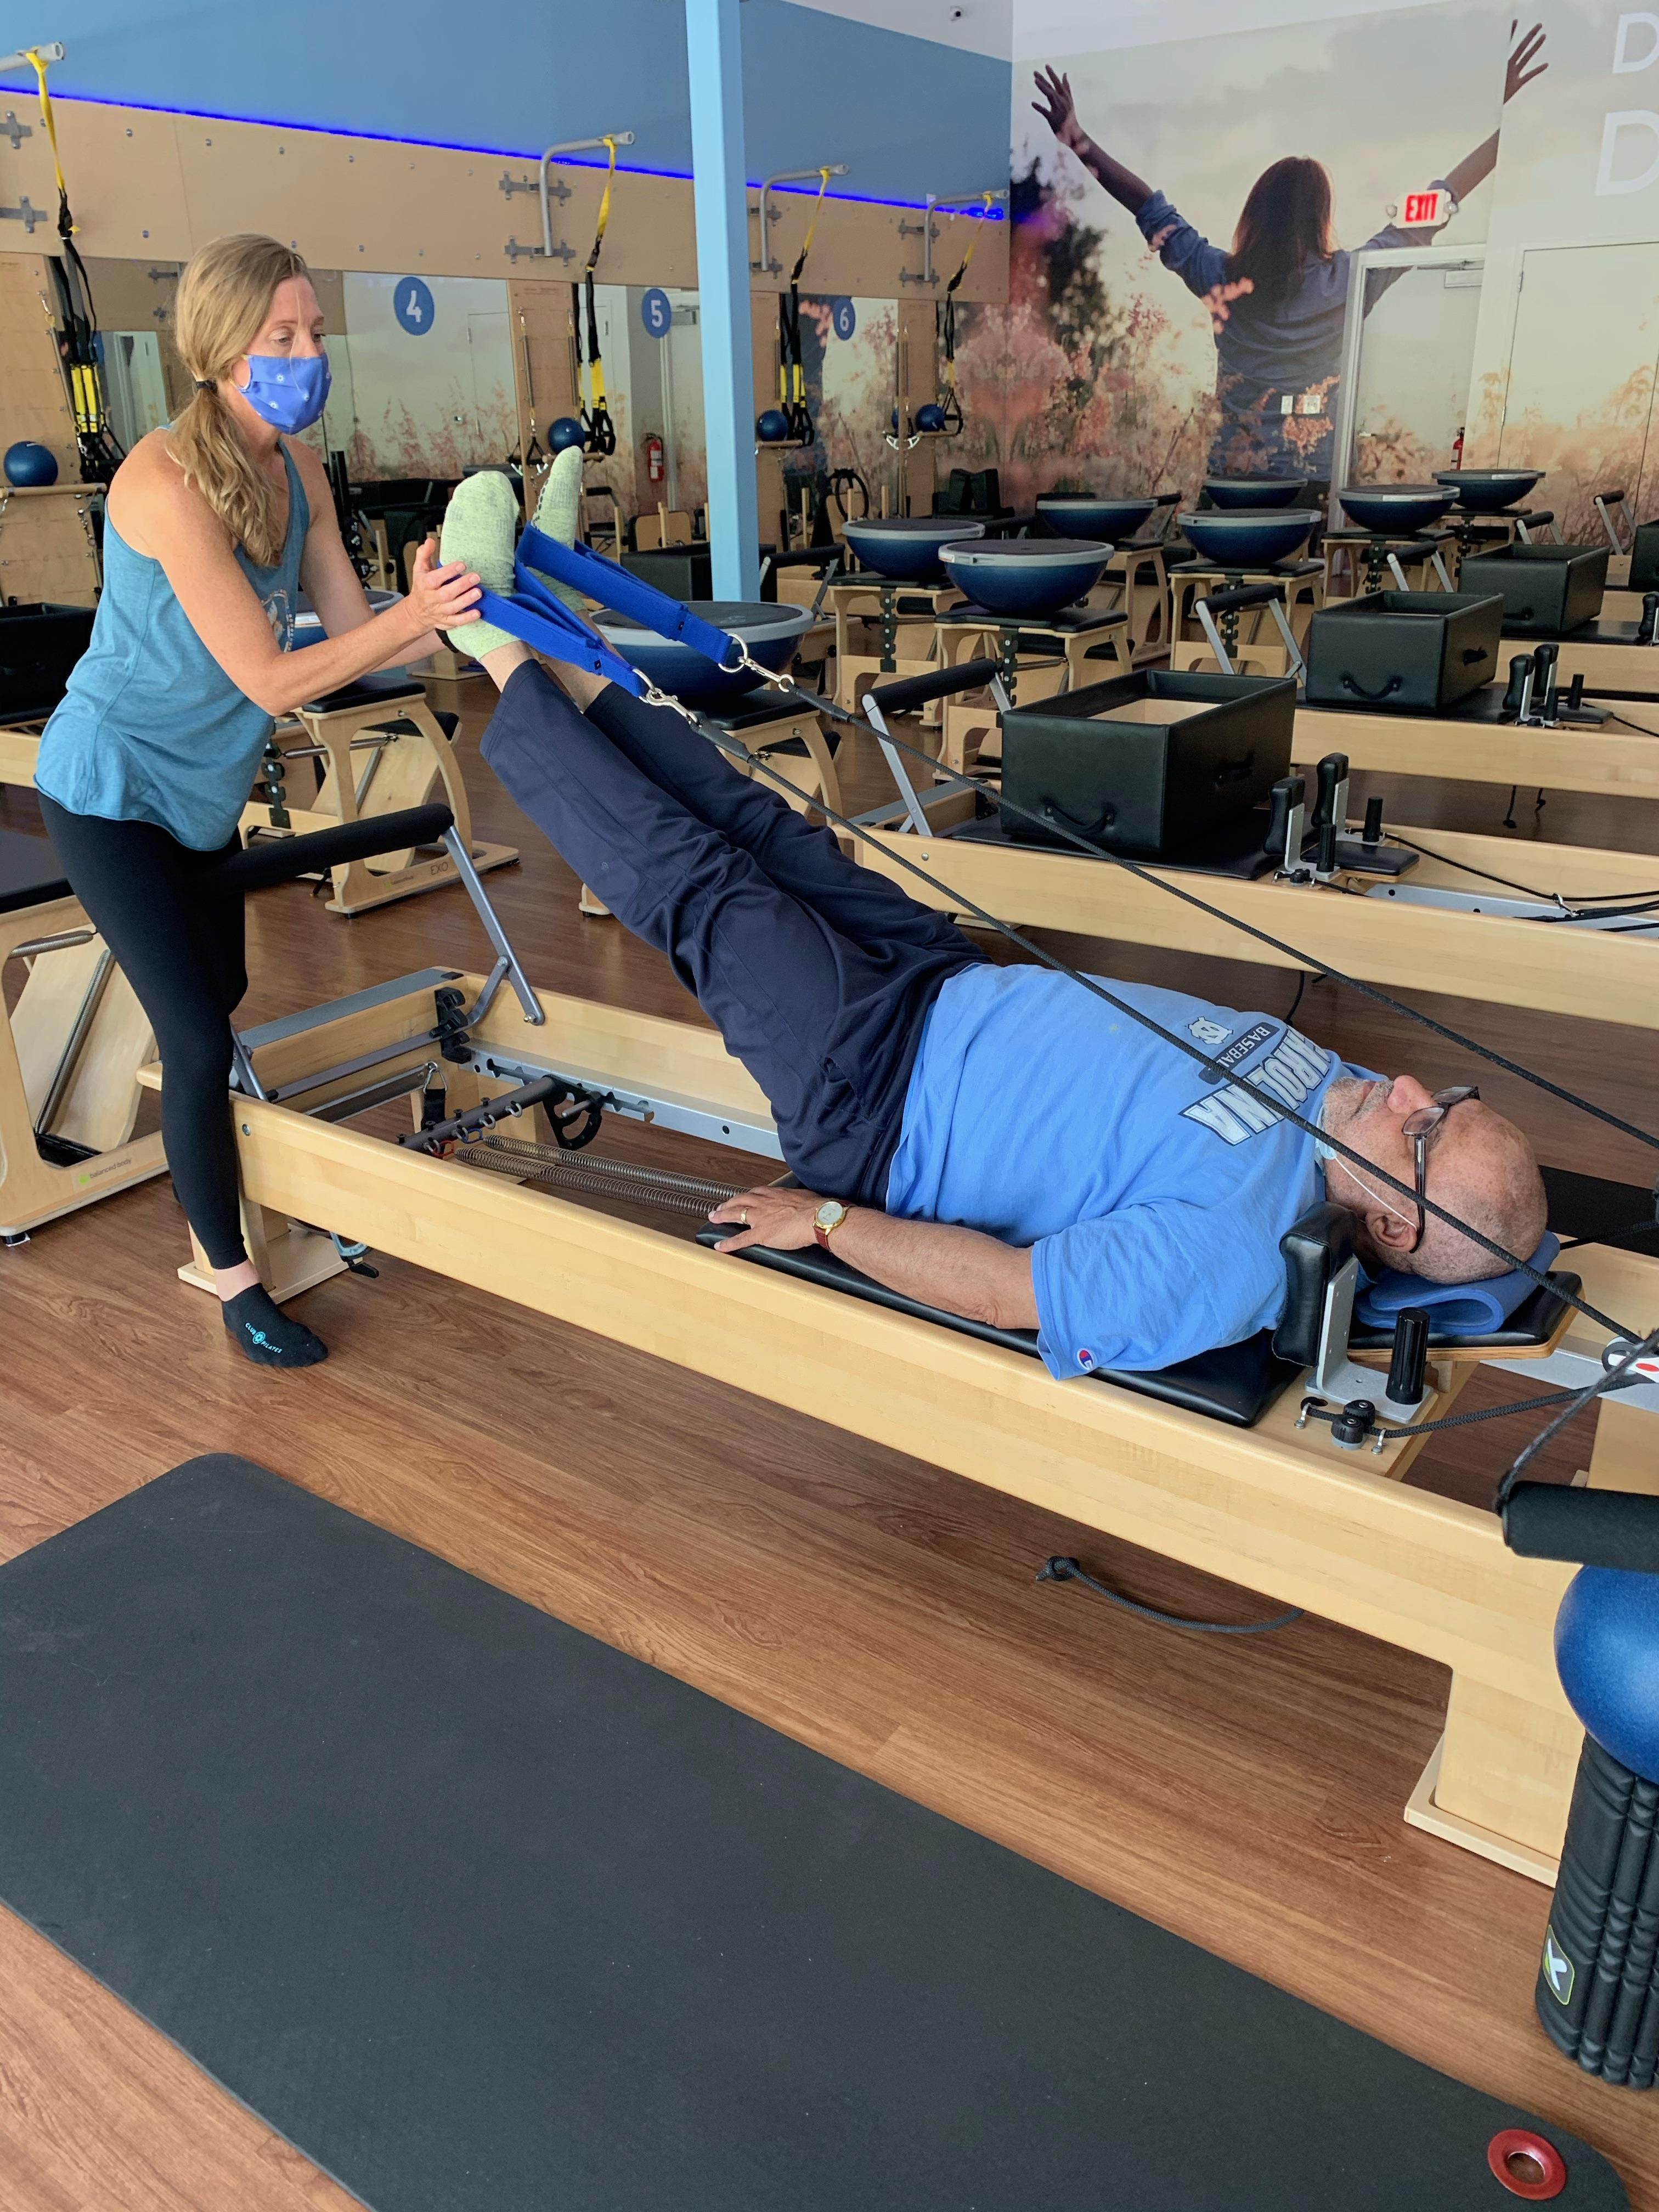 How Pilates Changed Our Wellness Routine After A Stroke